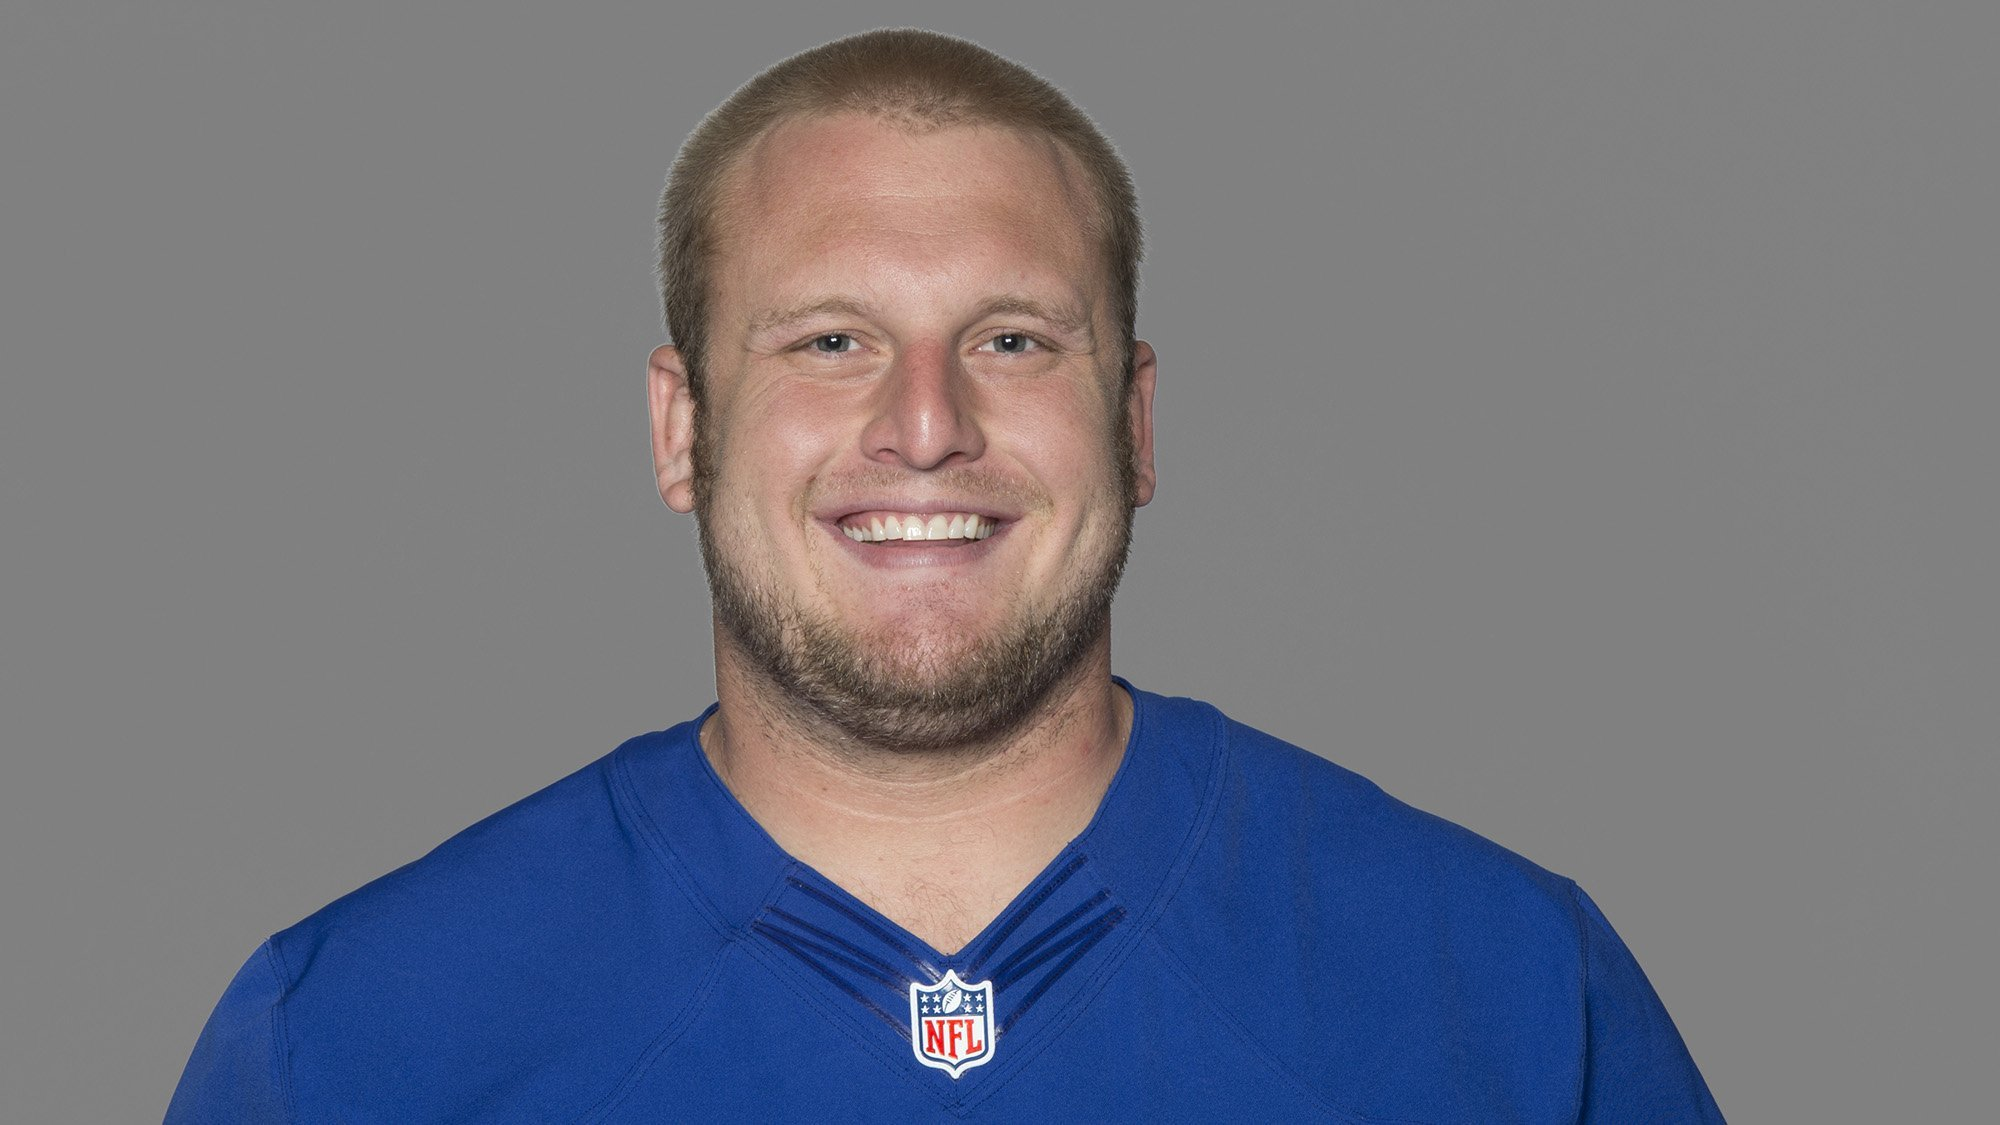 Mitch Petrus, former NFL lineman and Super Bowl champion, dies of heatstroke at age 32